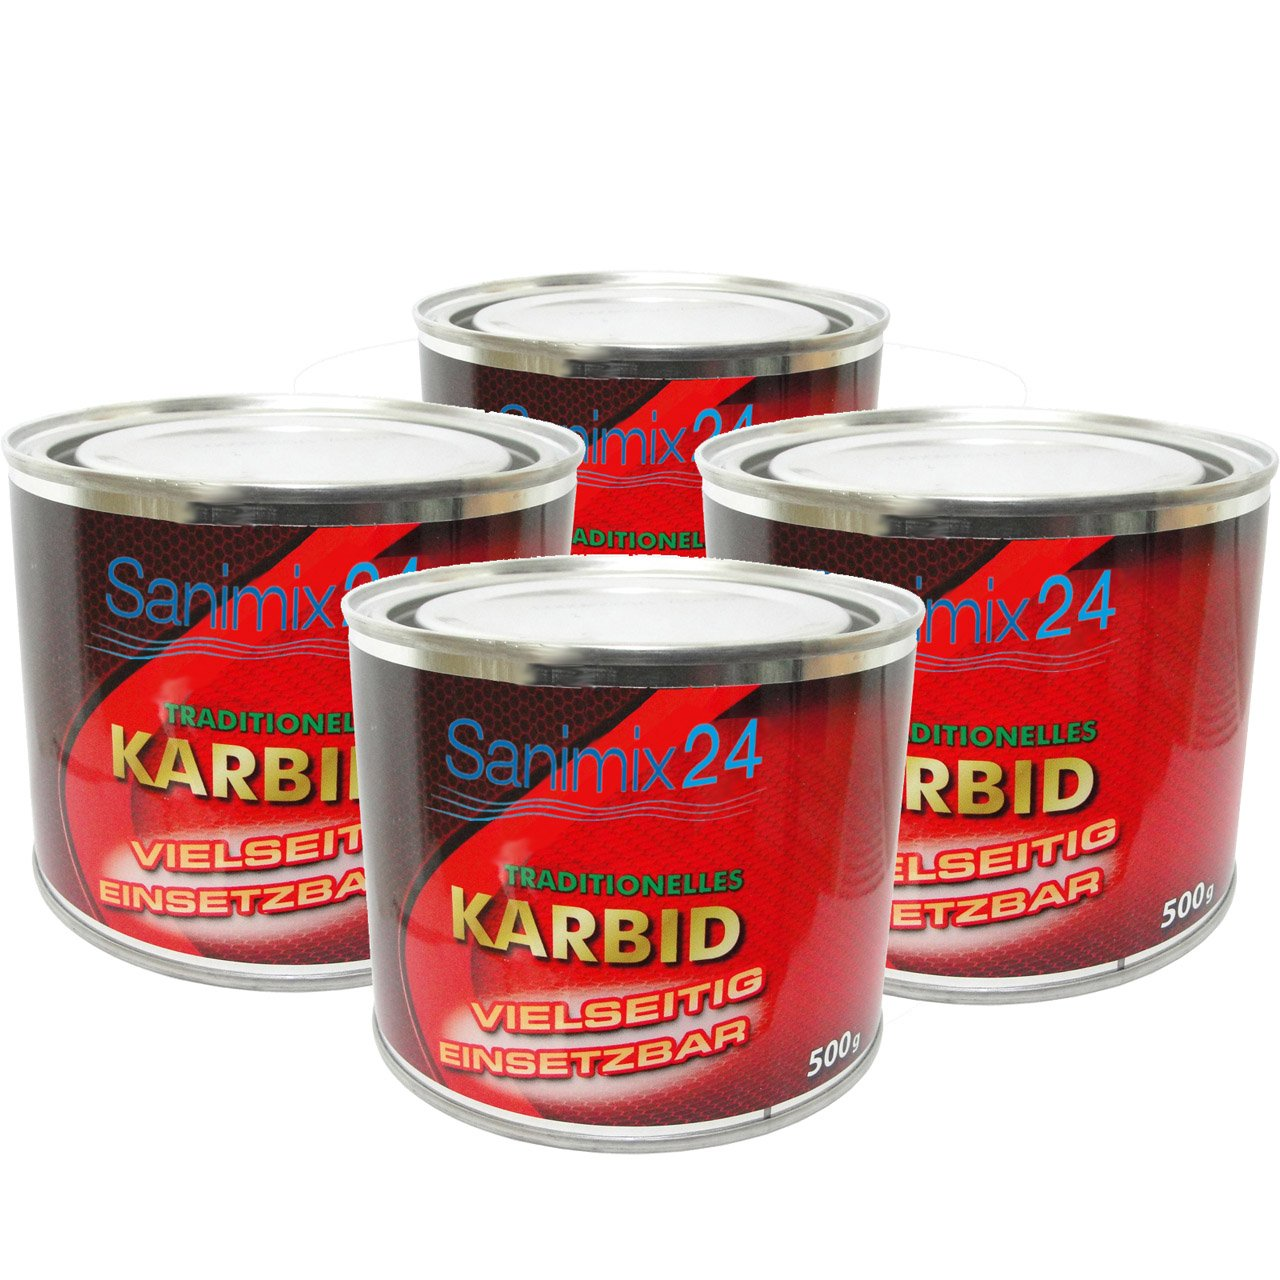 2 kg carbide, calcium carbide to Karbidschweissen for Karbidlampen as Maulwurfgas-Traditional Carbide is used as A means of moles AXOR